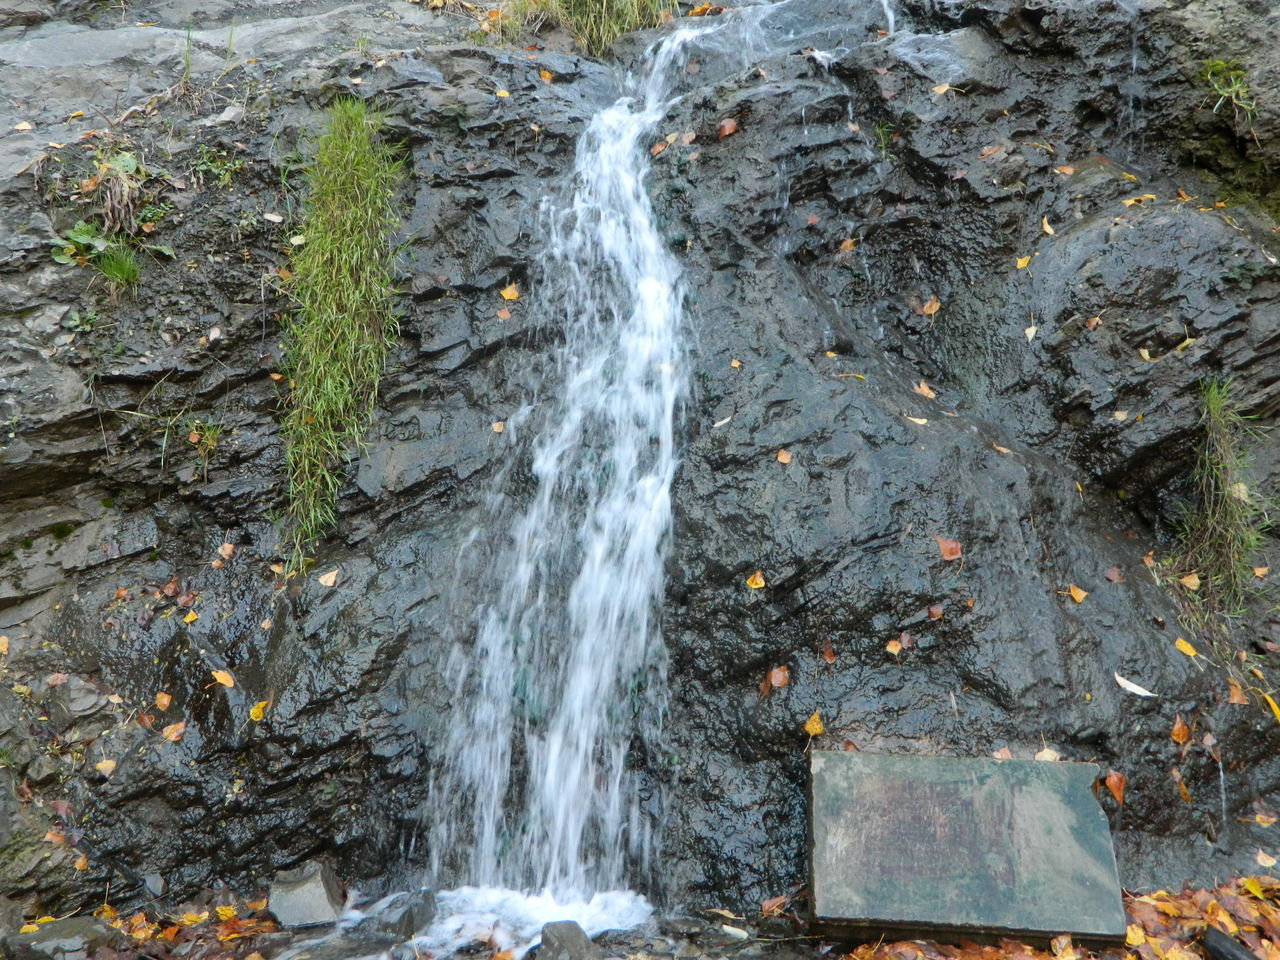 rock - object, waterfall, nature, no people, outdoors, water, motion, day, beauty in nature